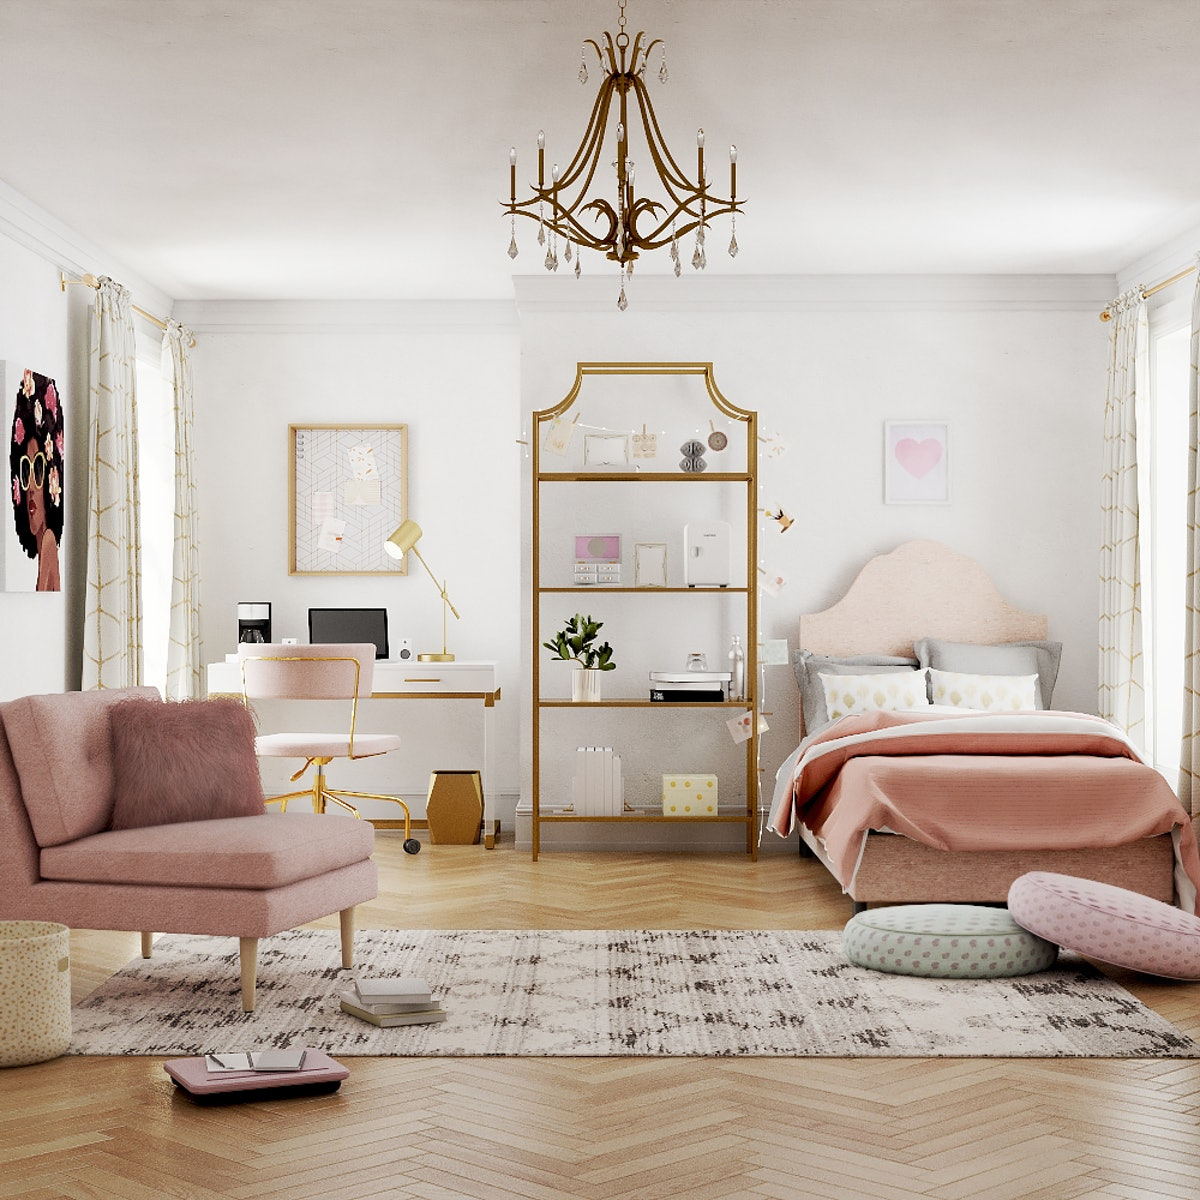 """A modern glam room is filled with pink plush furniture and gold accents, thanks to Bed Bath & Beyond's """"College from Home"""" experience."""